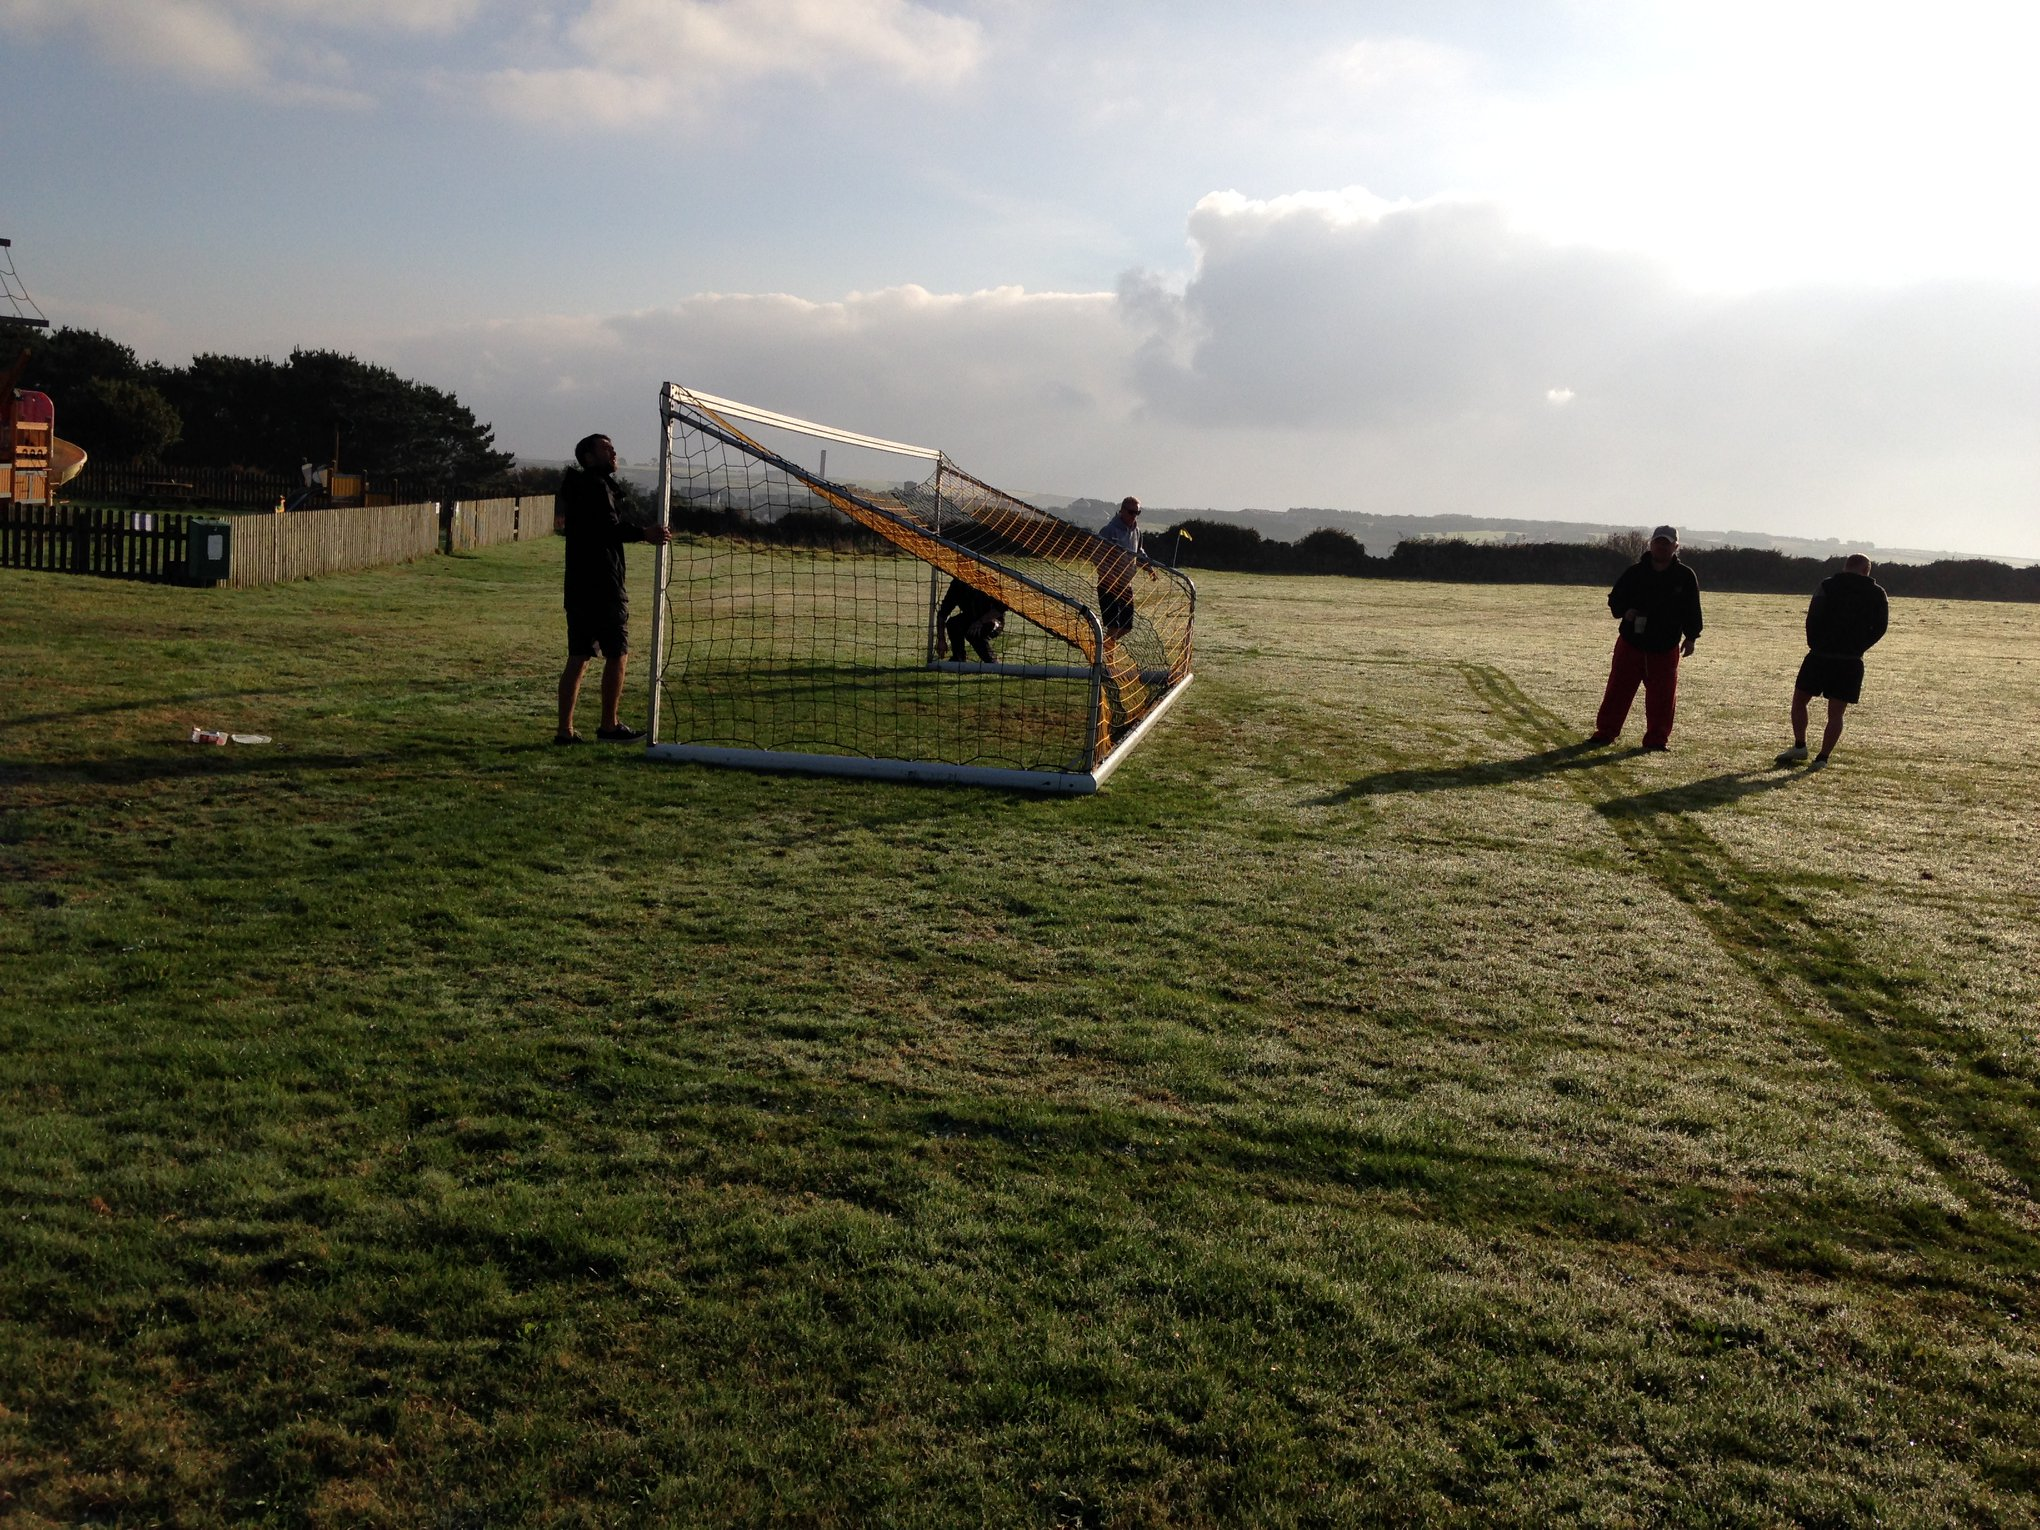 The goals being setup ahead of play.